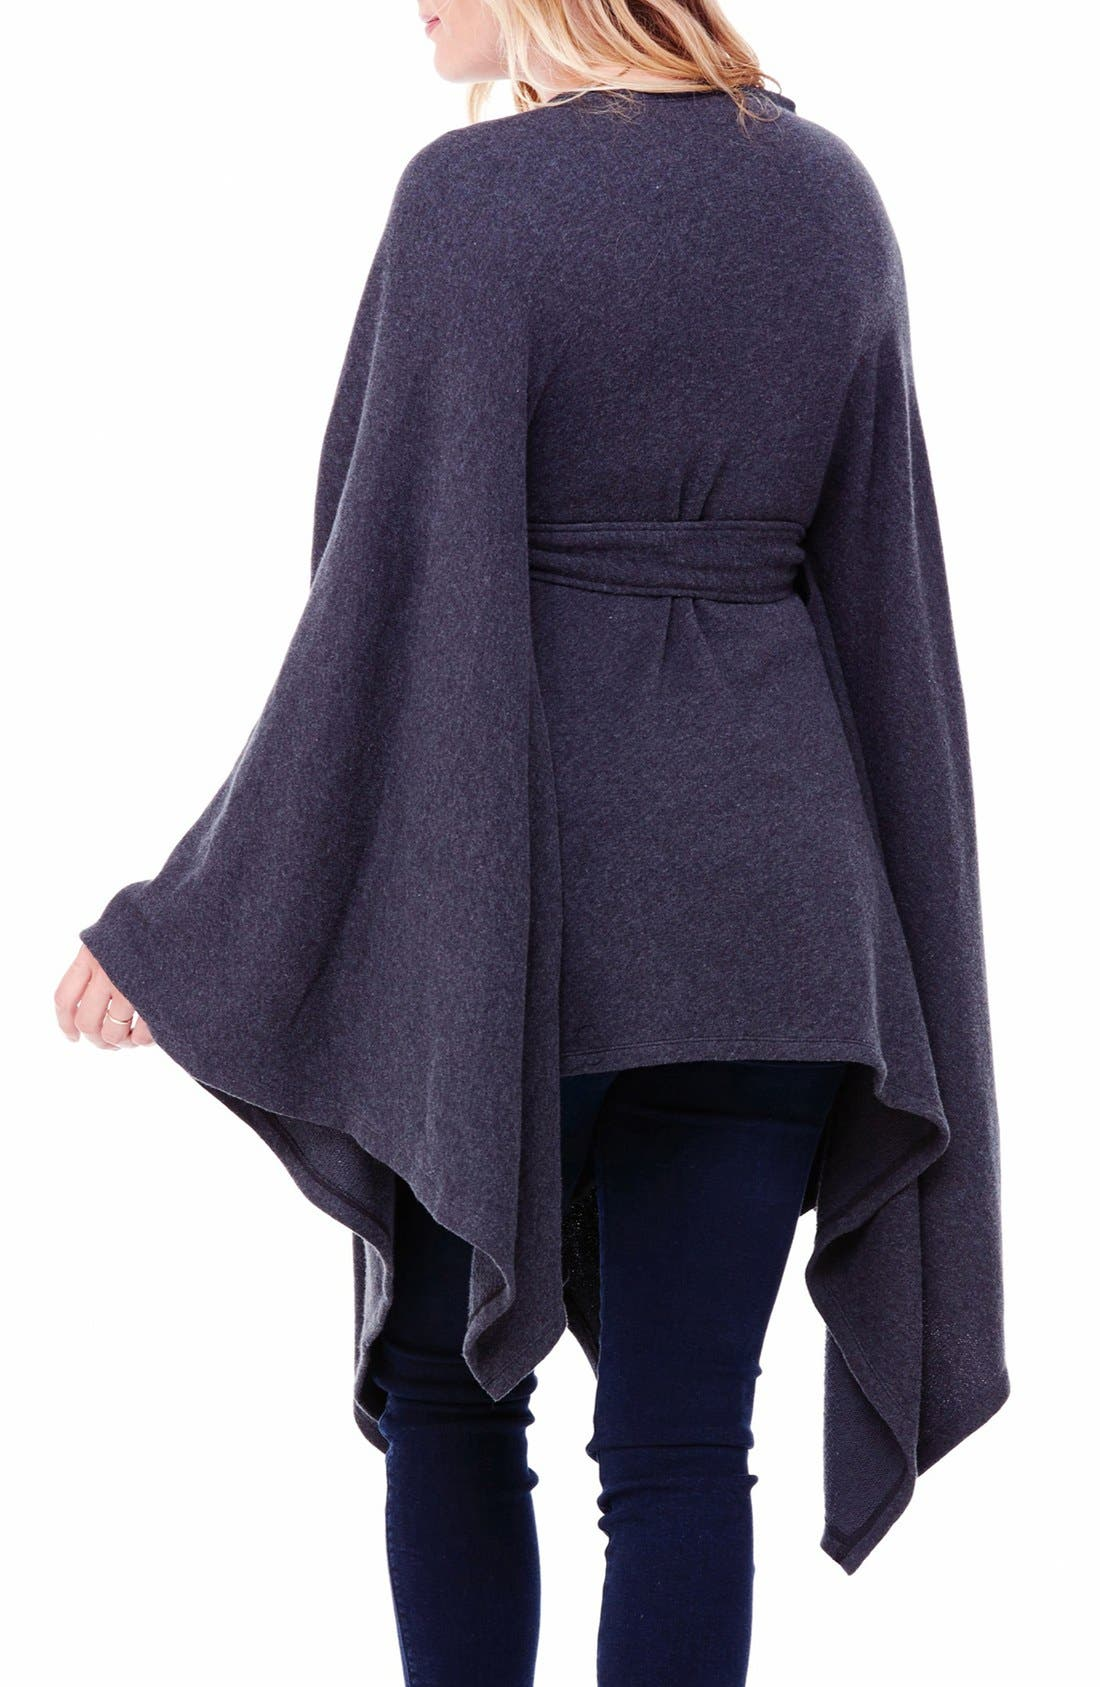 Cozy Maternity Wrap,                             Alternate thumbnail 2, color,                             Charcoal Grey